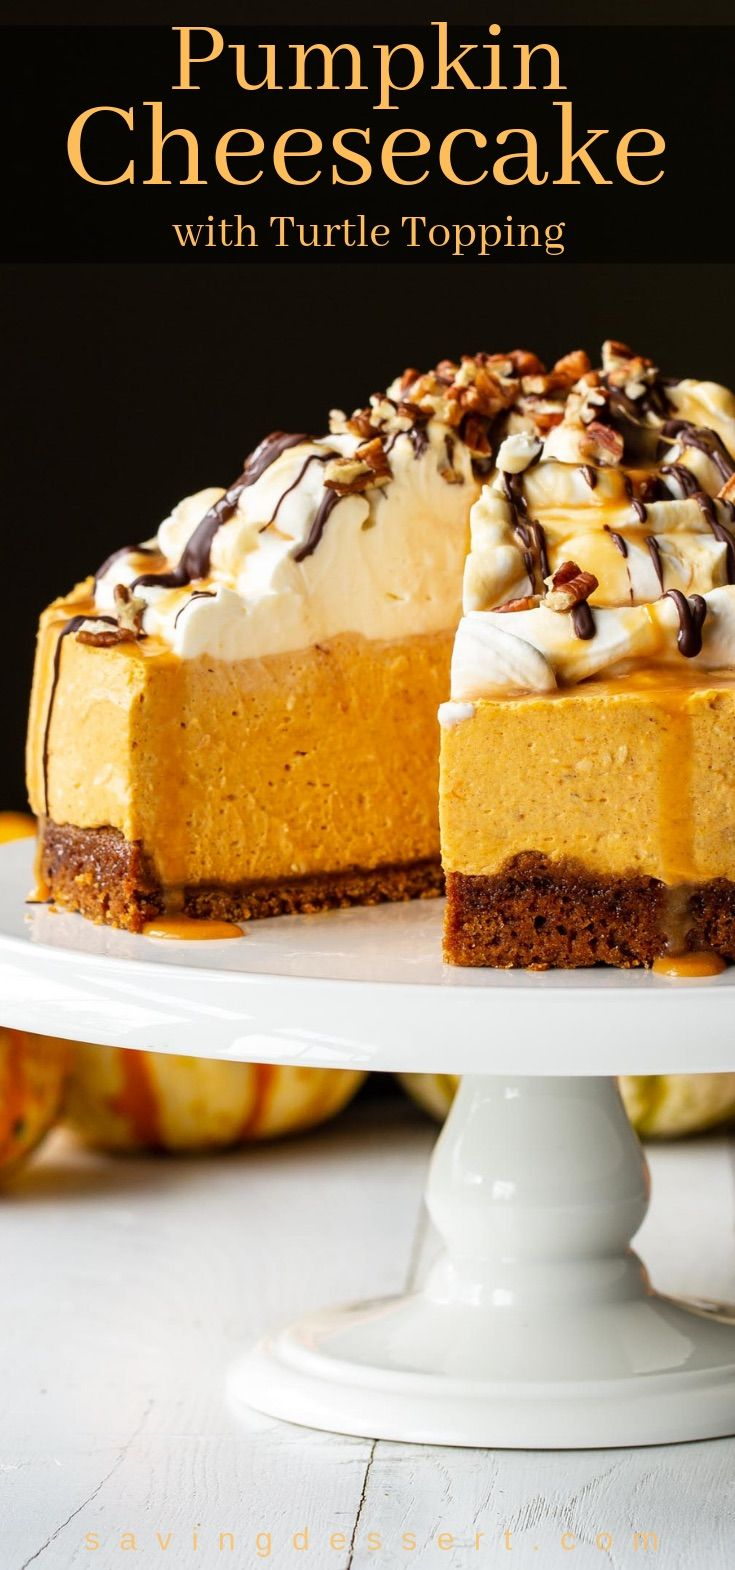 Pumpkin Cheesecake with Turtle Topping - Saving Room for Dessert